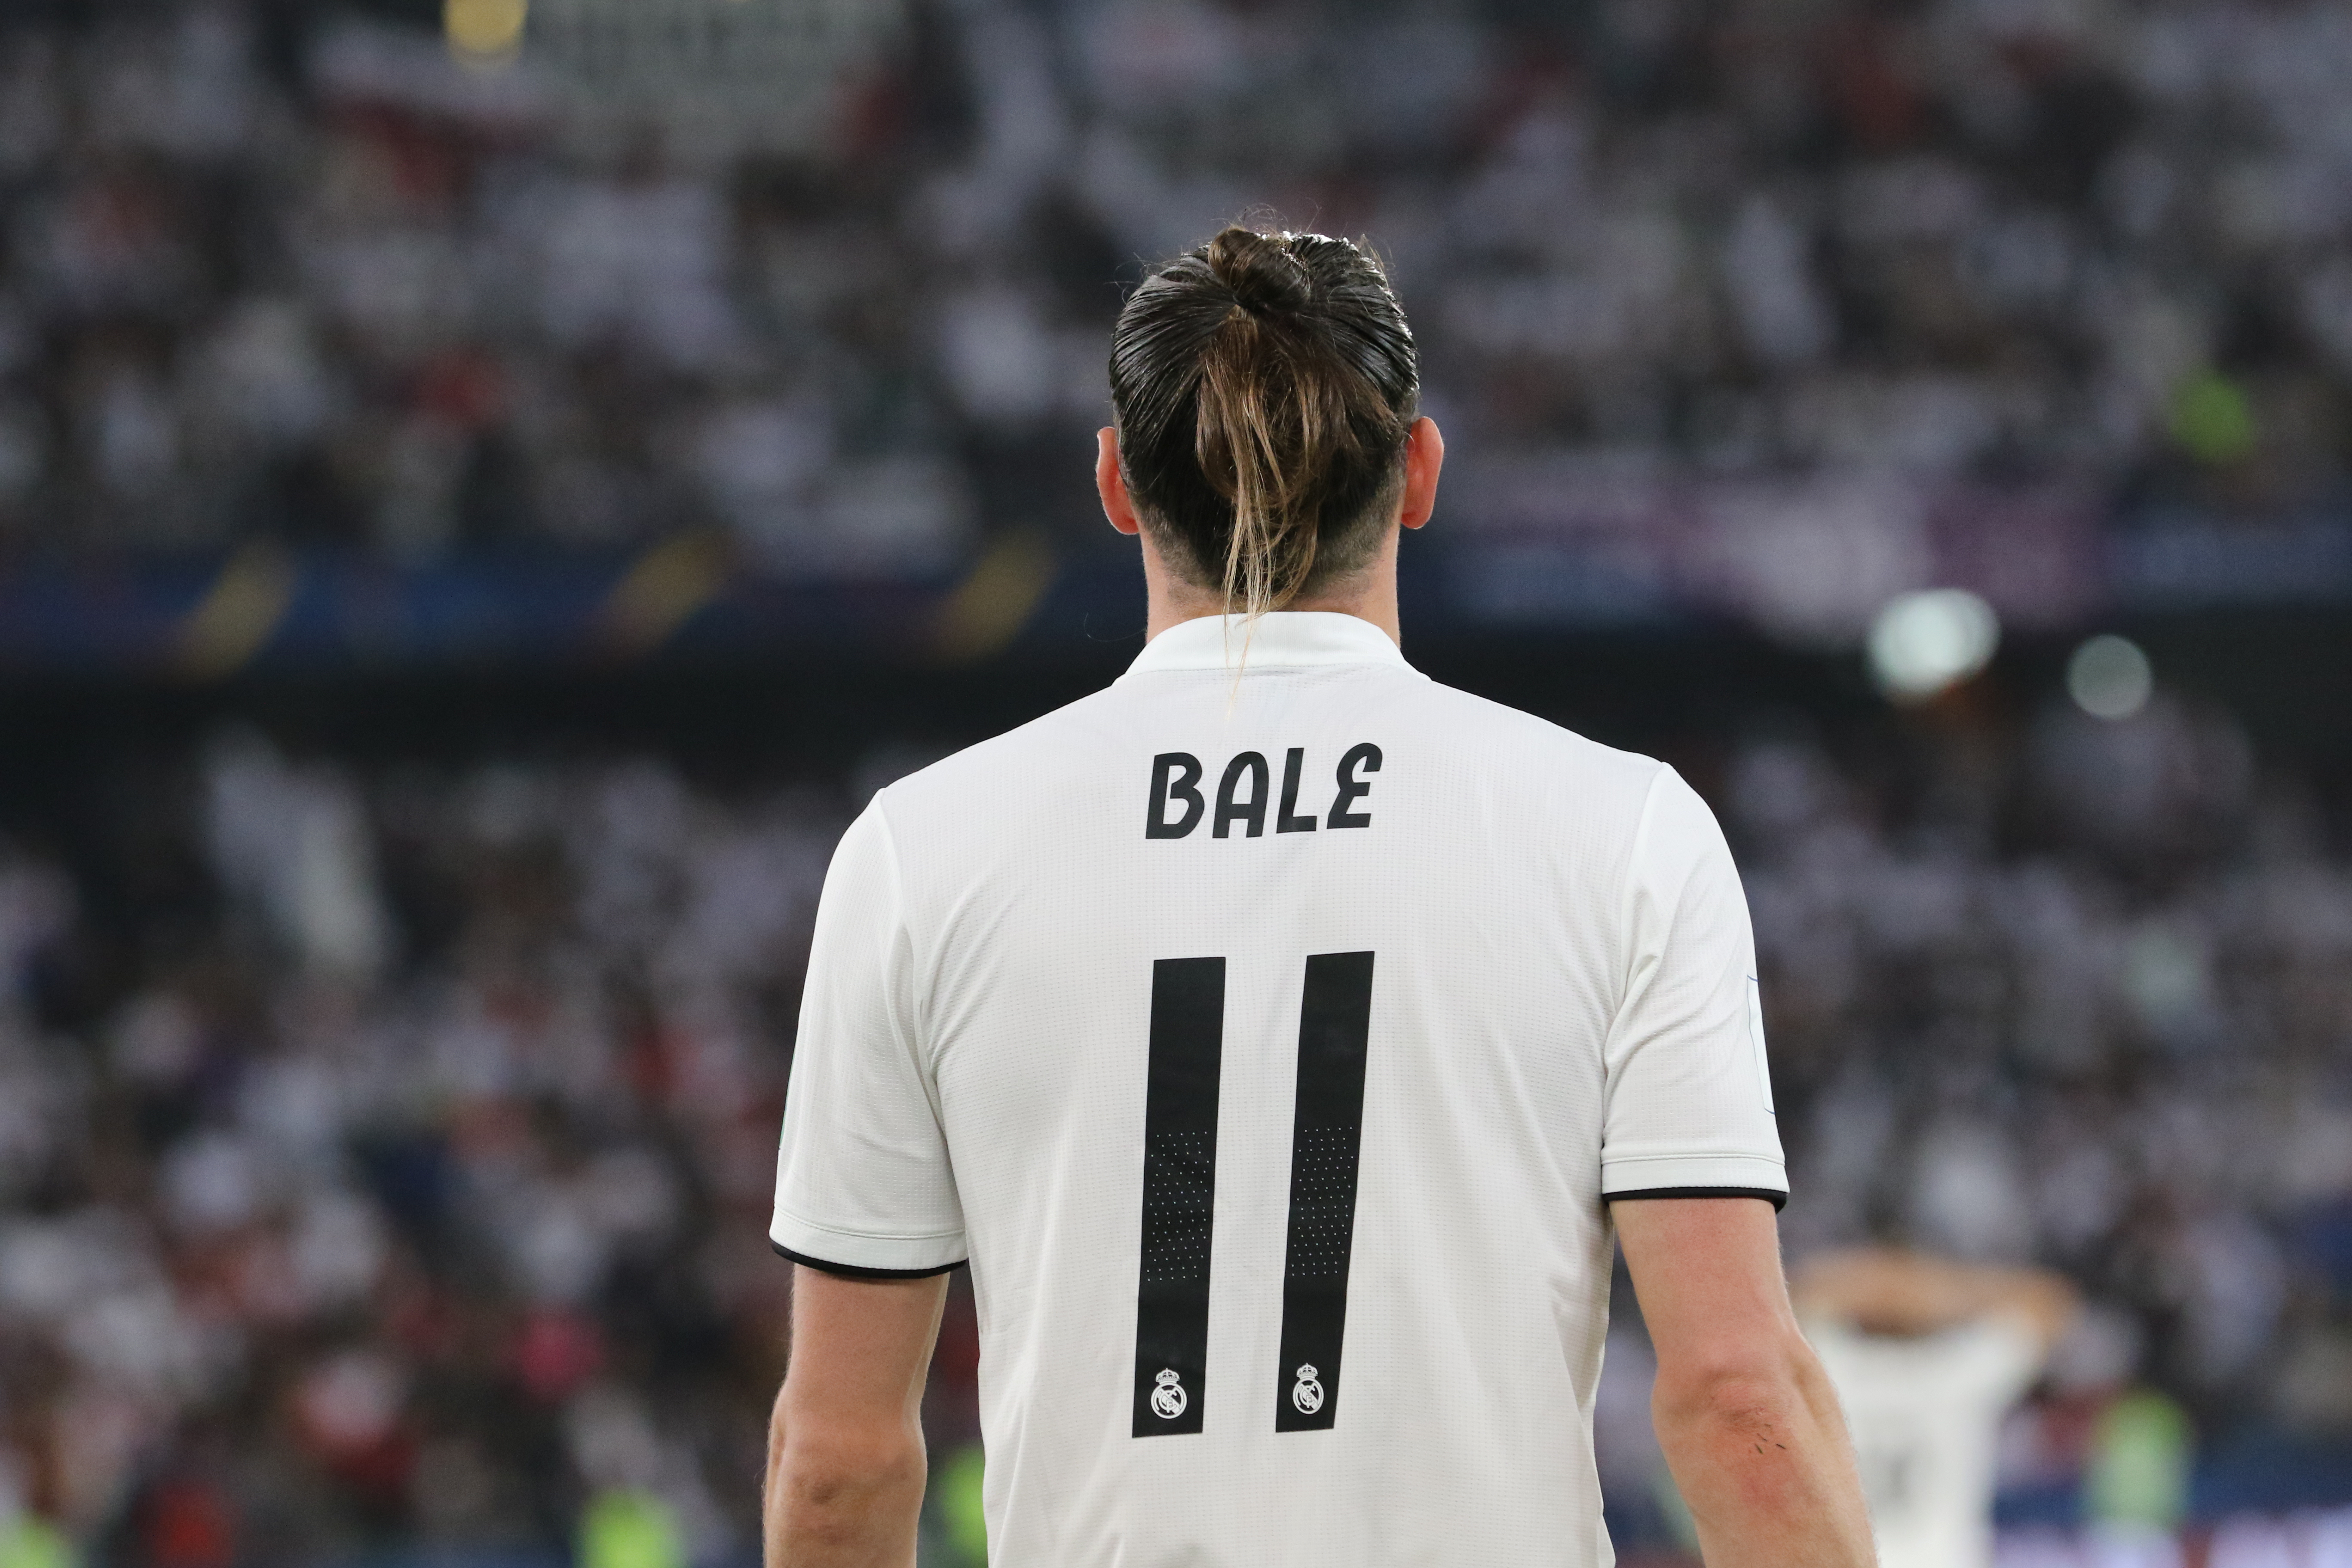 Transfer Gossip: Bale to snub Tottenham move, Martial's future at Man Utd secure